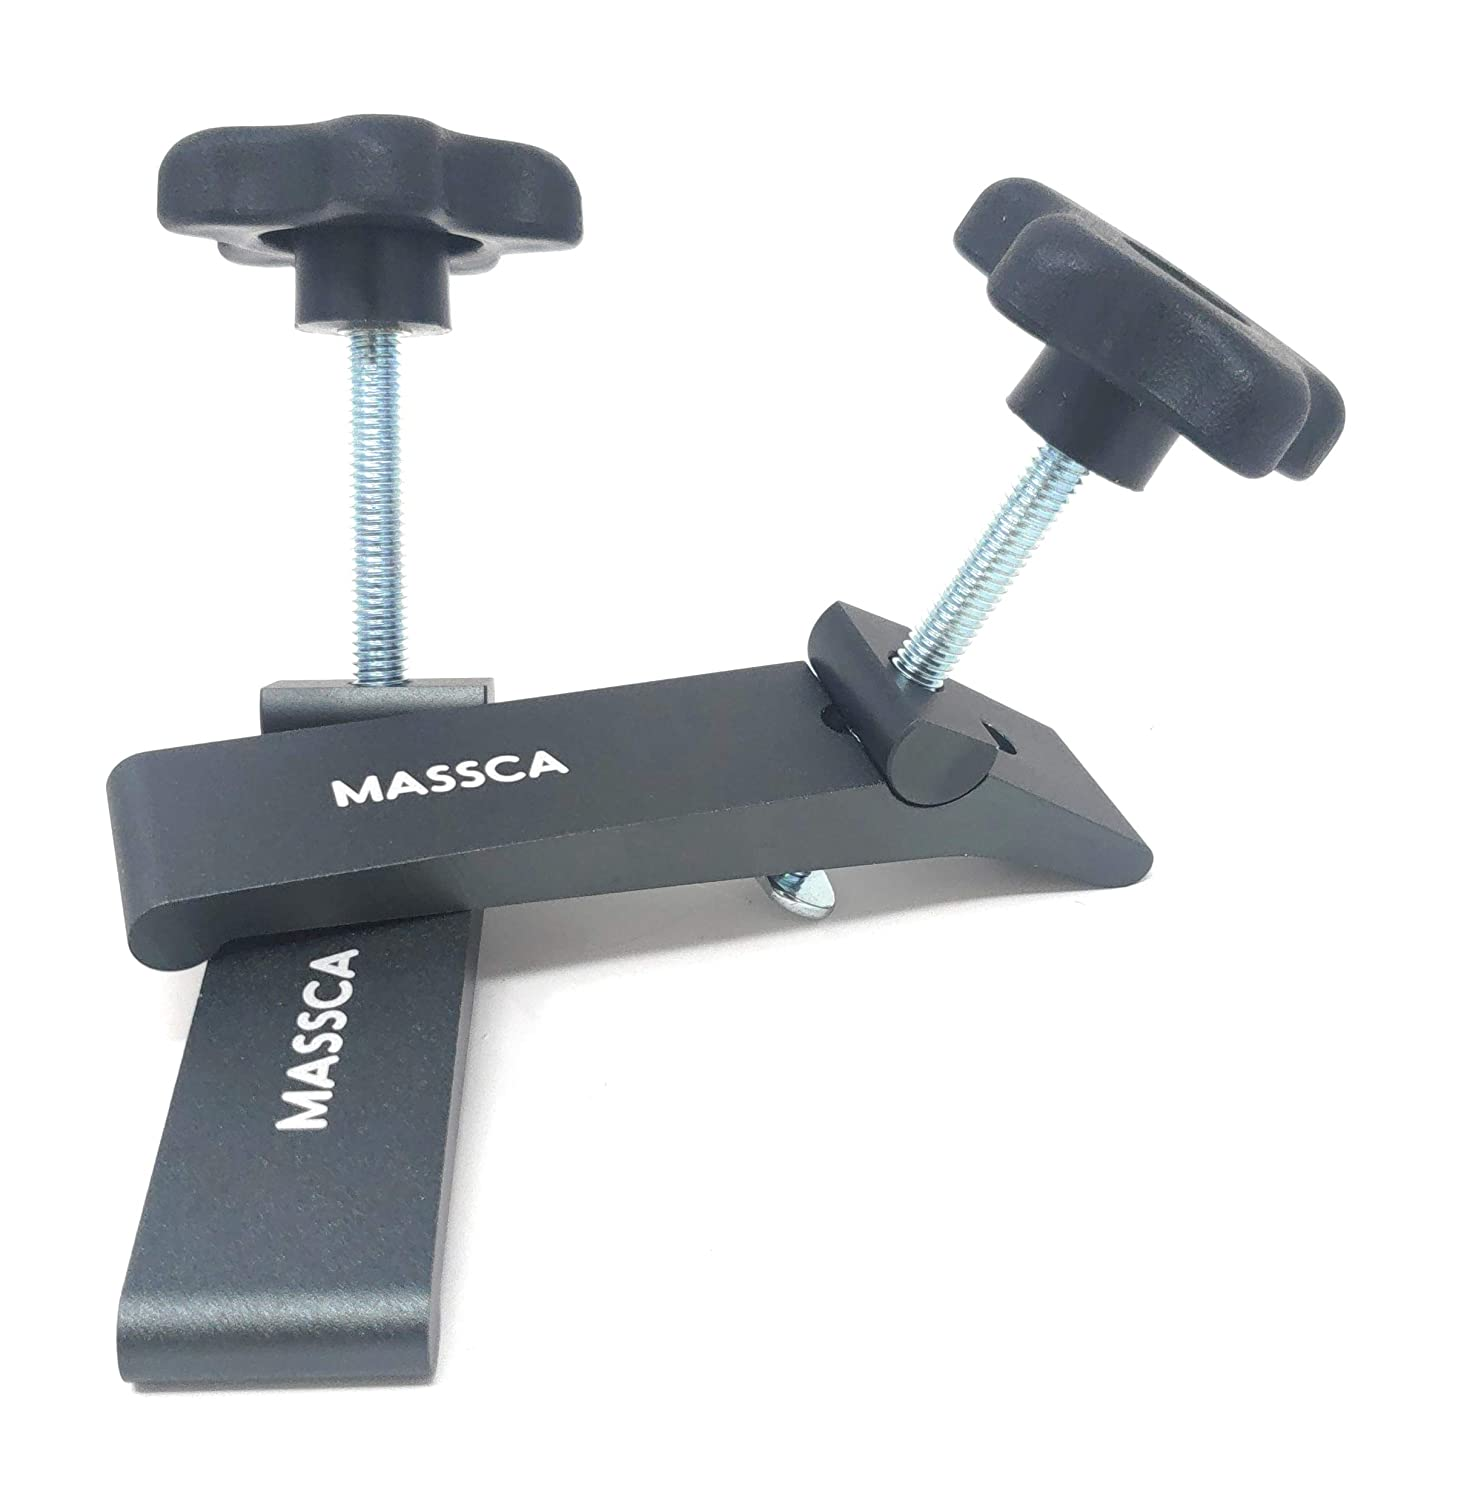 MASSCA Hold-Down Clamp Heavy Duty Made from Strong High-Grade Carbon Steel for Home /& Workshop Use 5-1//2 L x 1-1//8